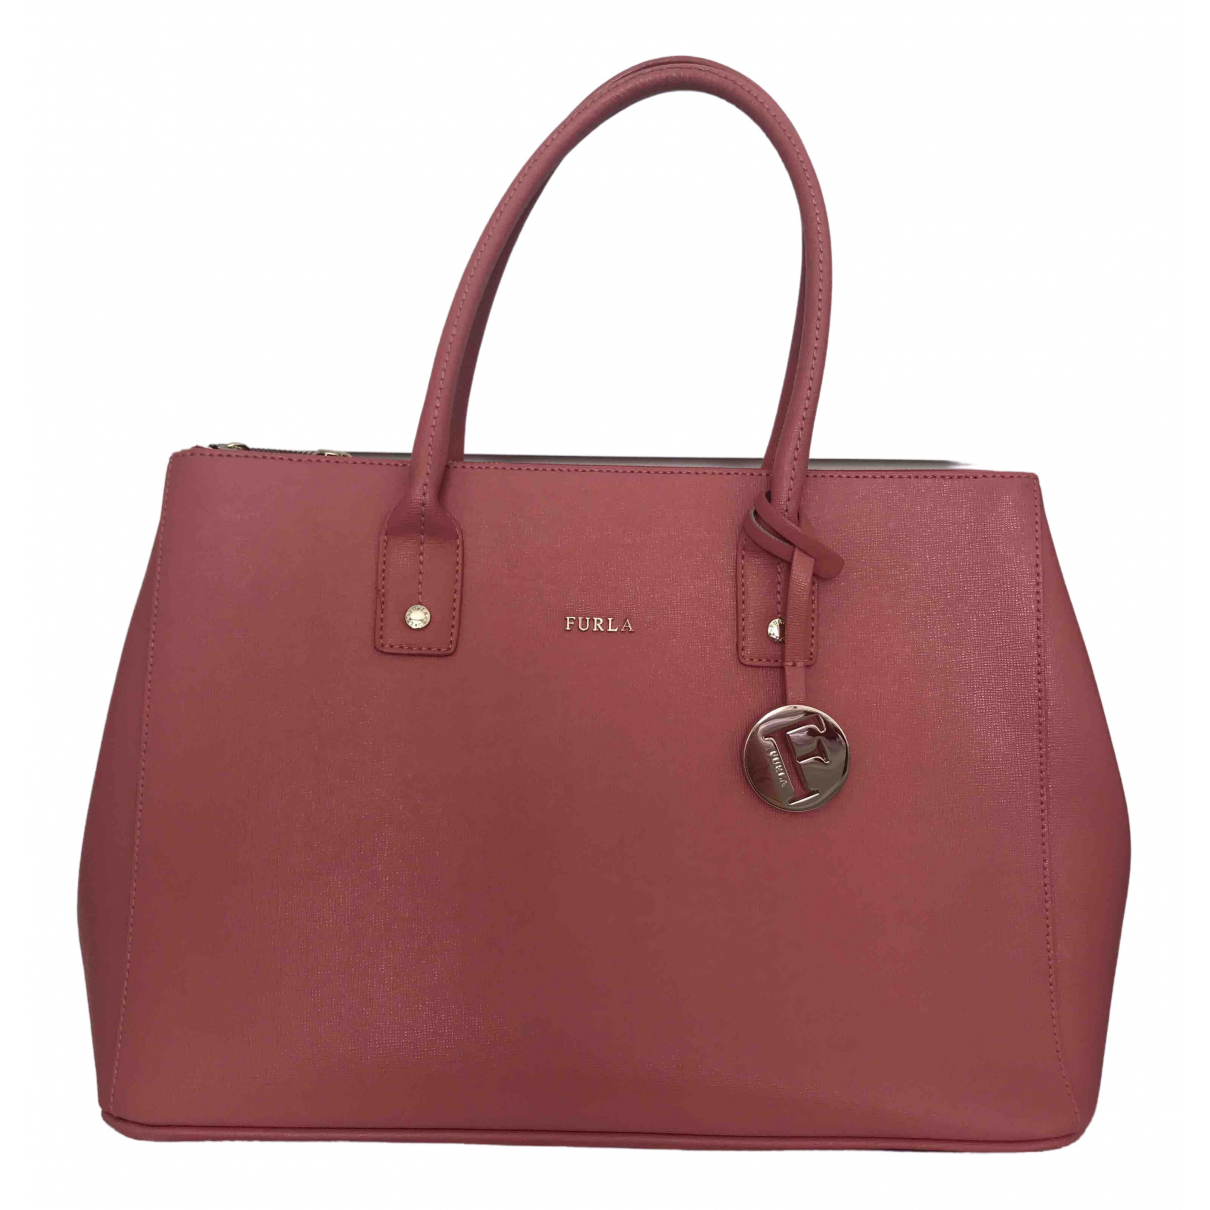 Furla \N Red Leather handbag for Women \N